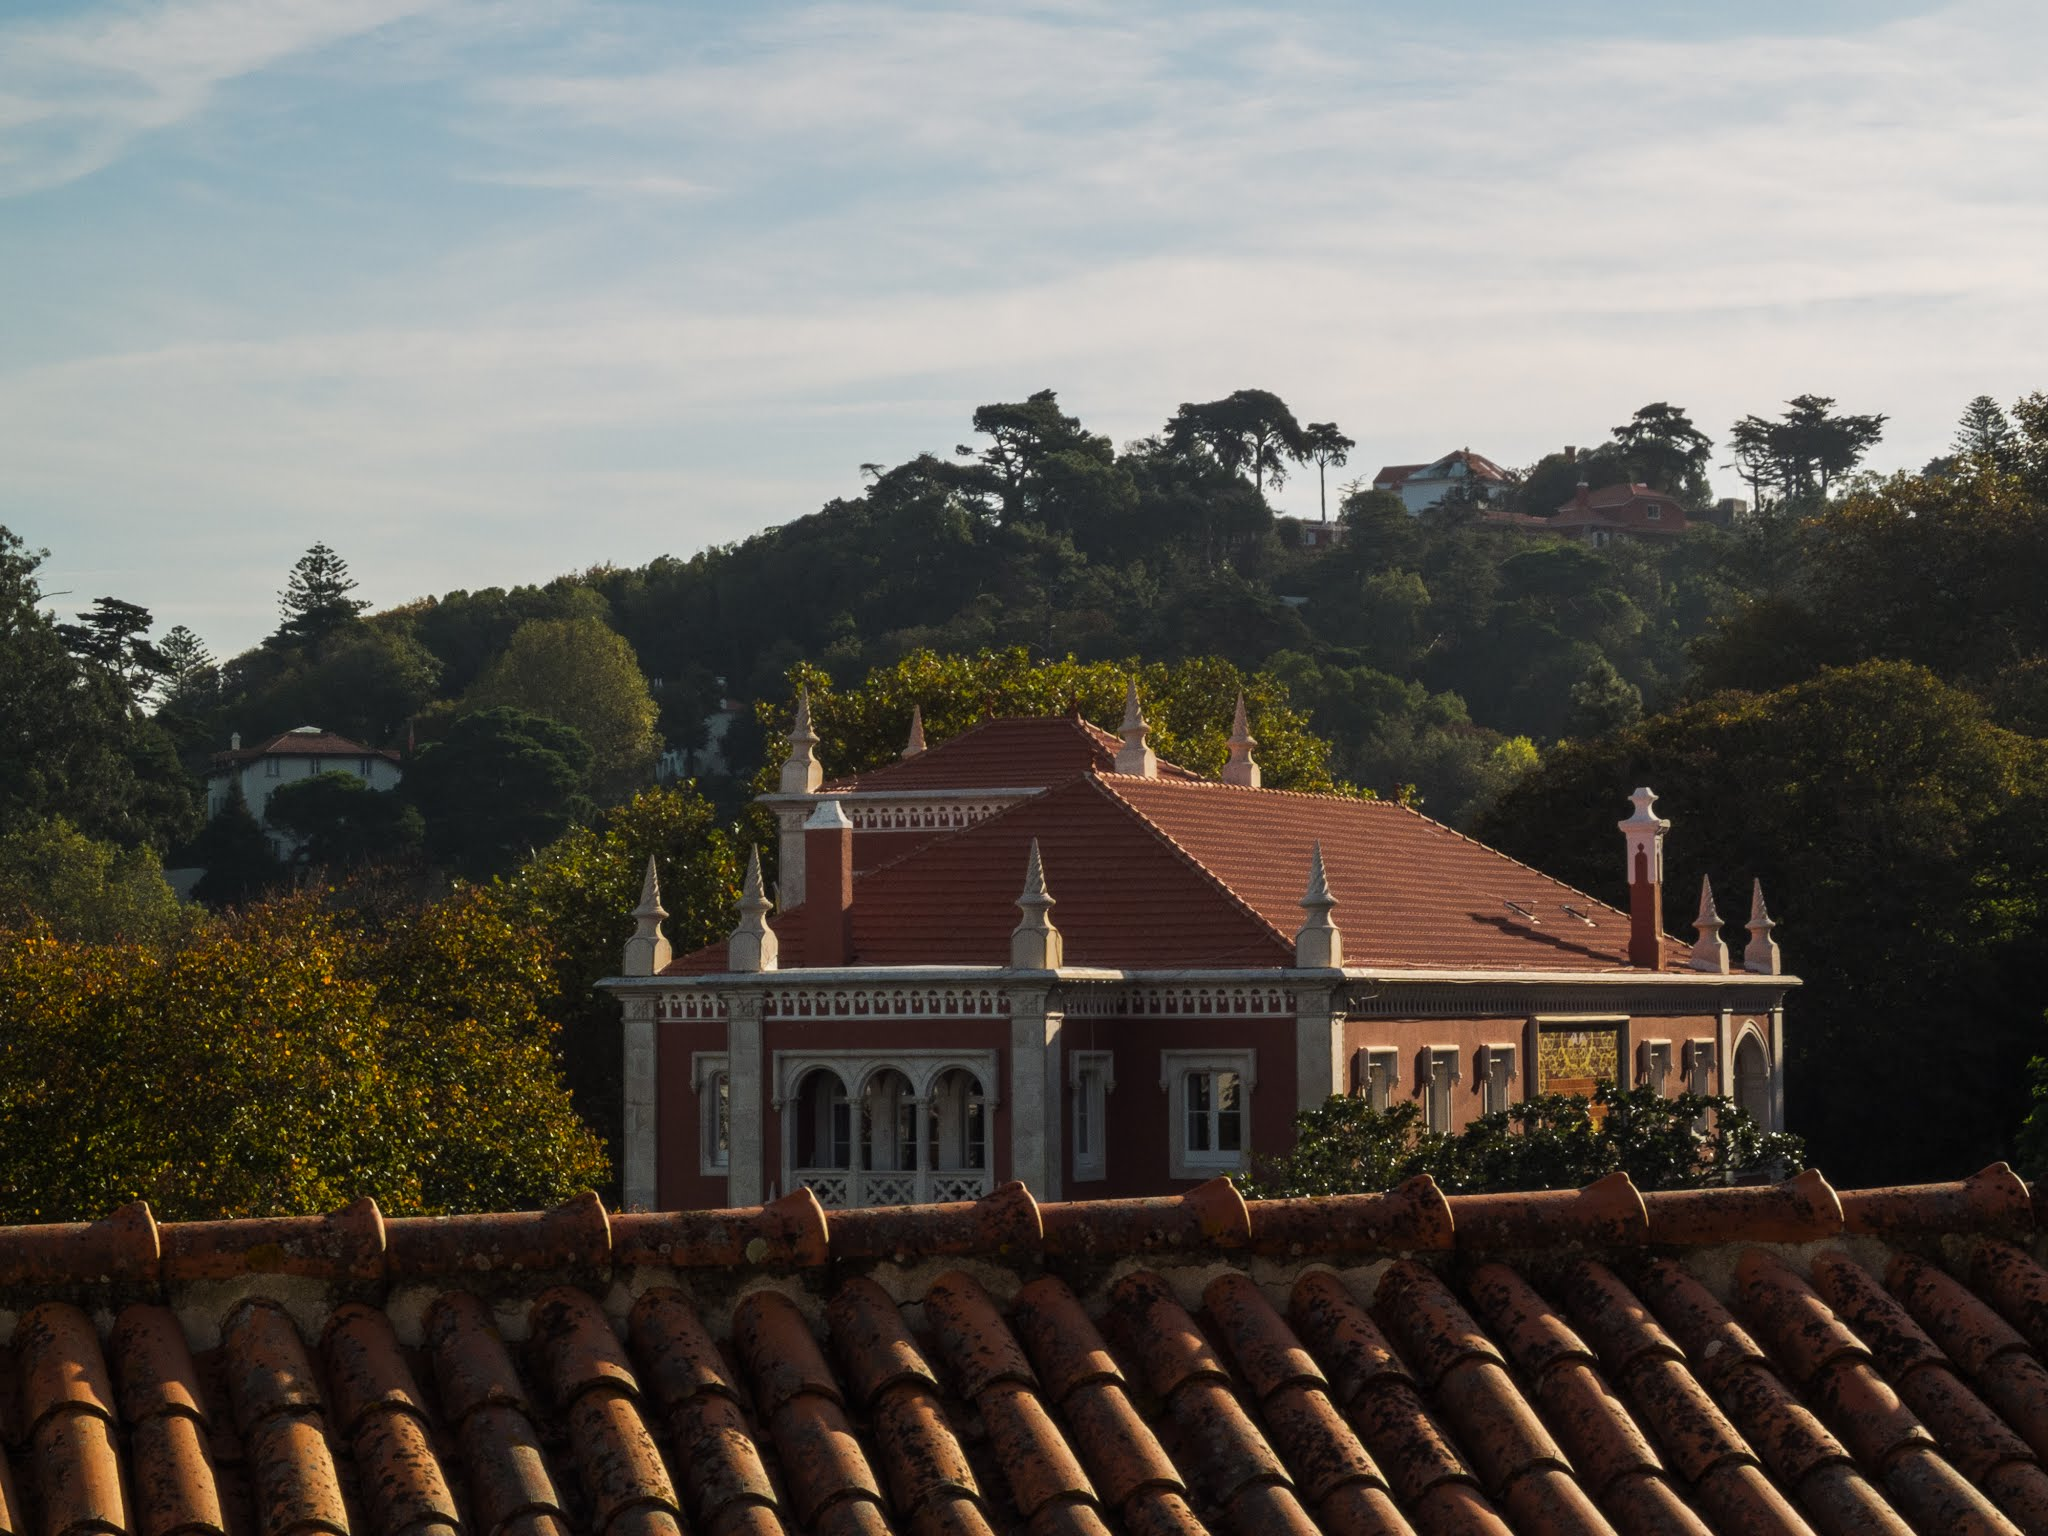 View of a building over a terracotta rooftop in Sintra, Portugal.